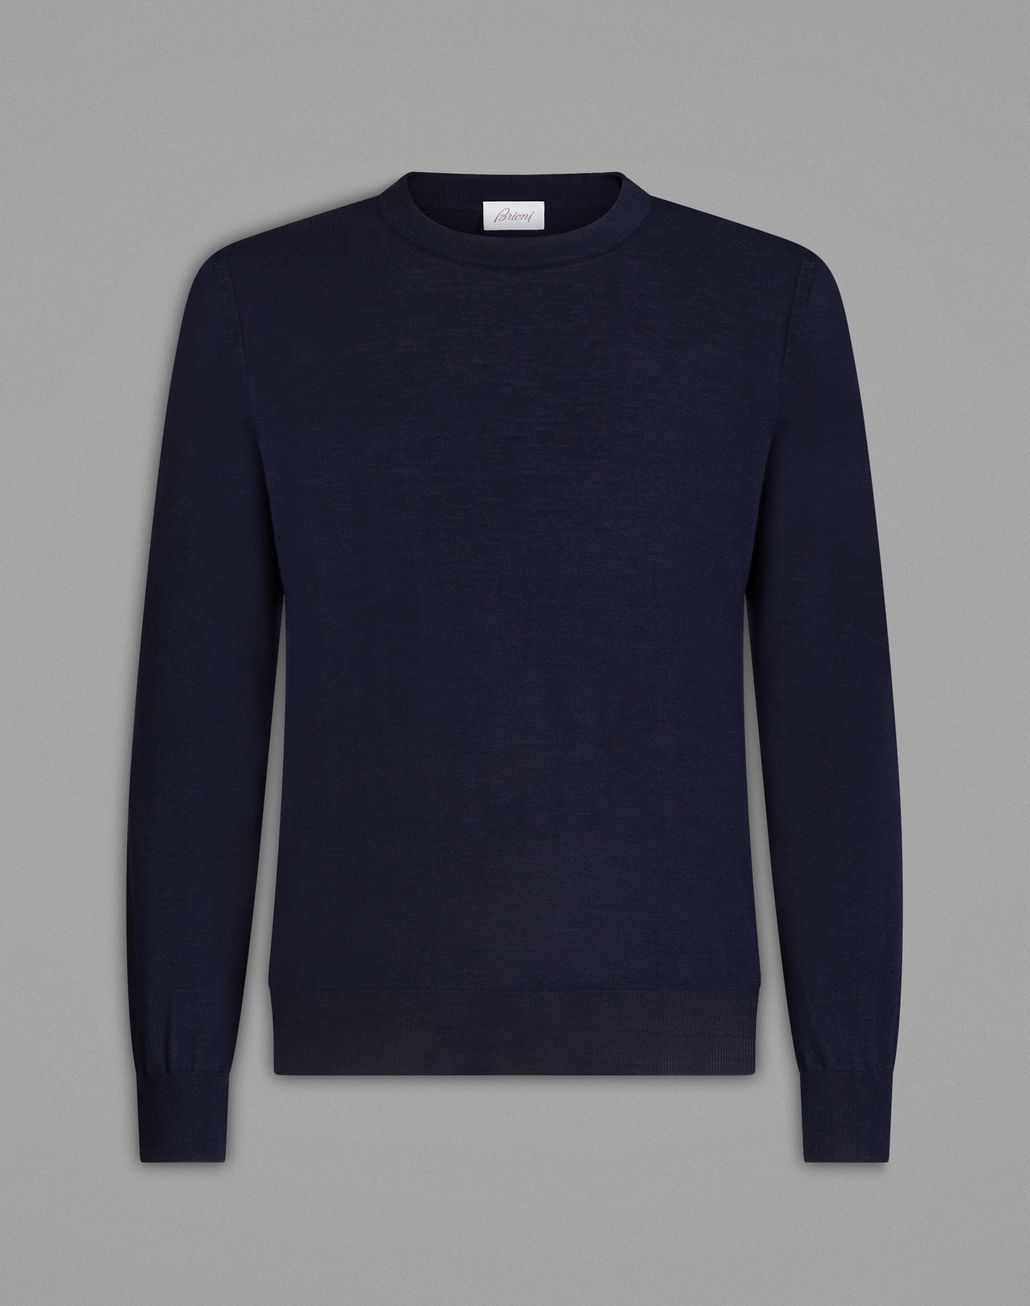 BRIONI Essential' Navy Blue Crew-Neck Sweater Knitwear Man f